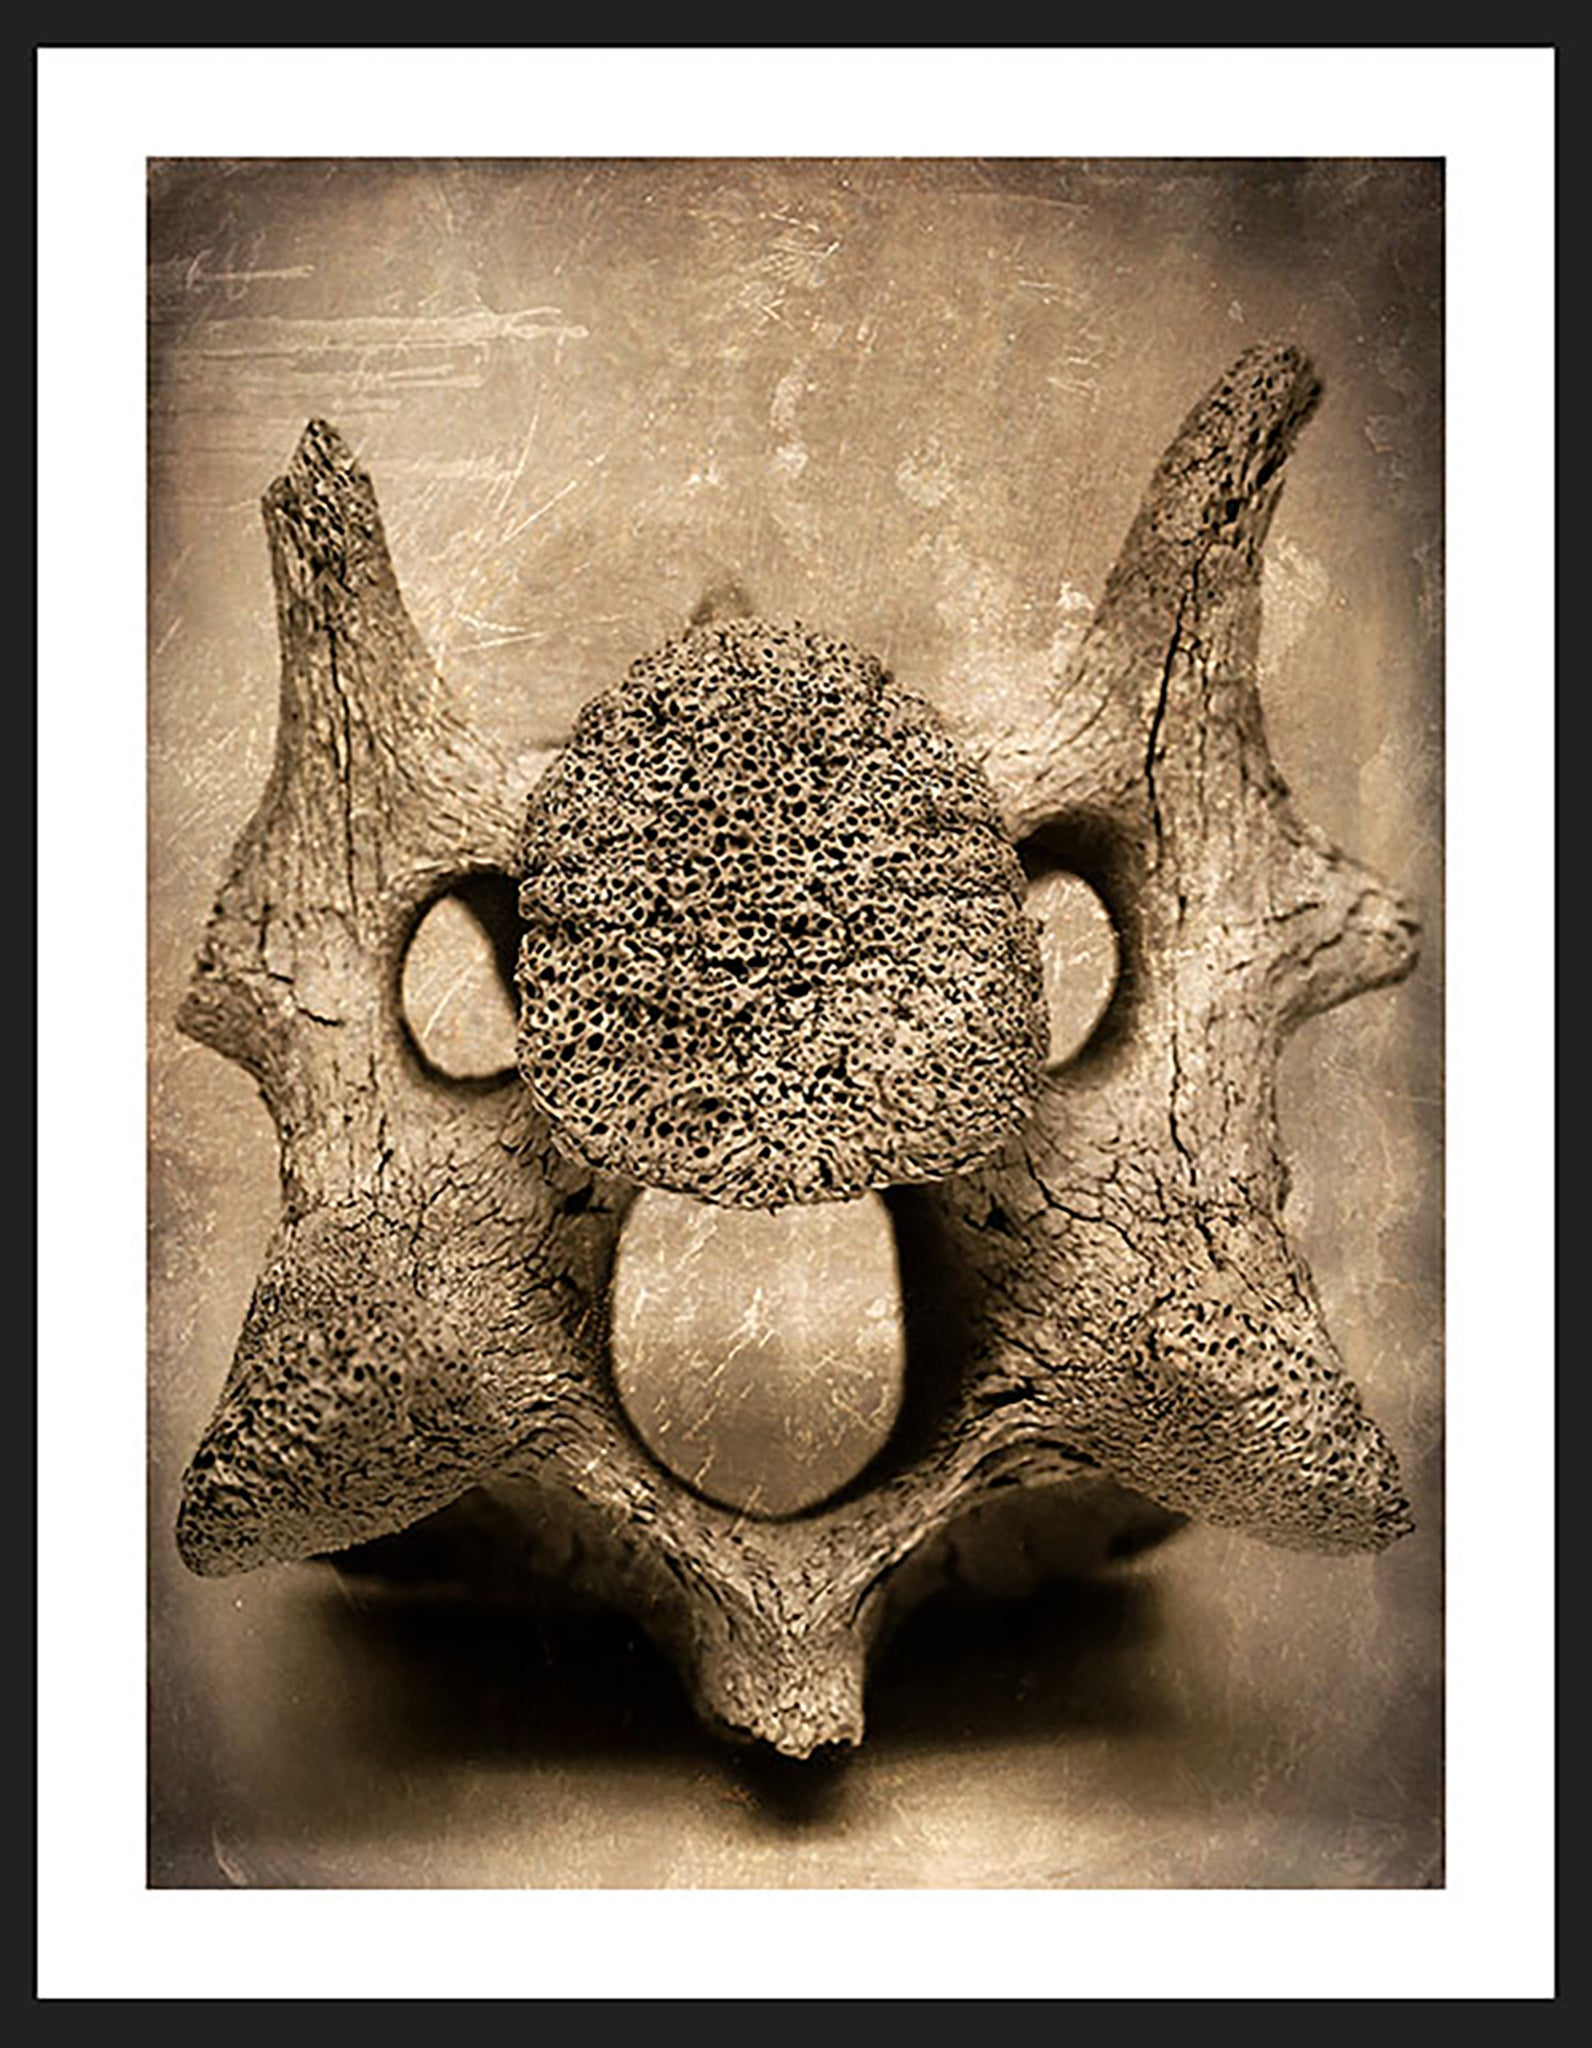 Bone photography by Adam Williams